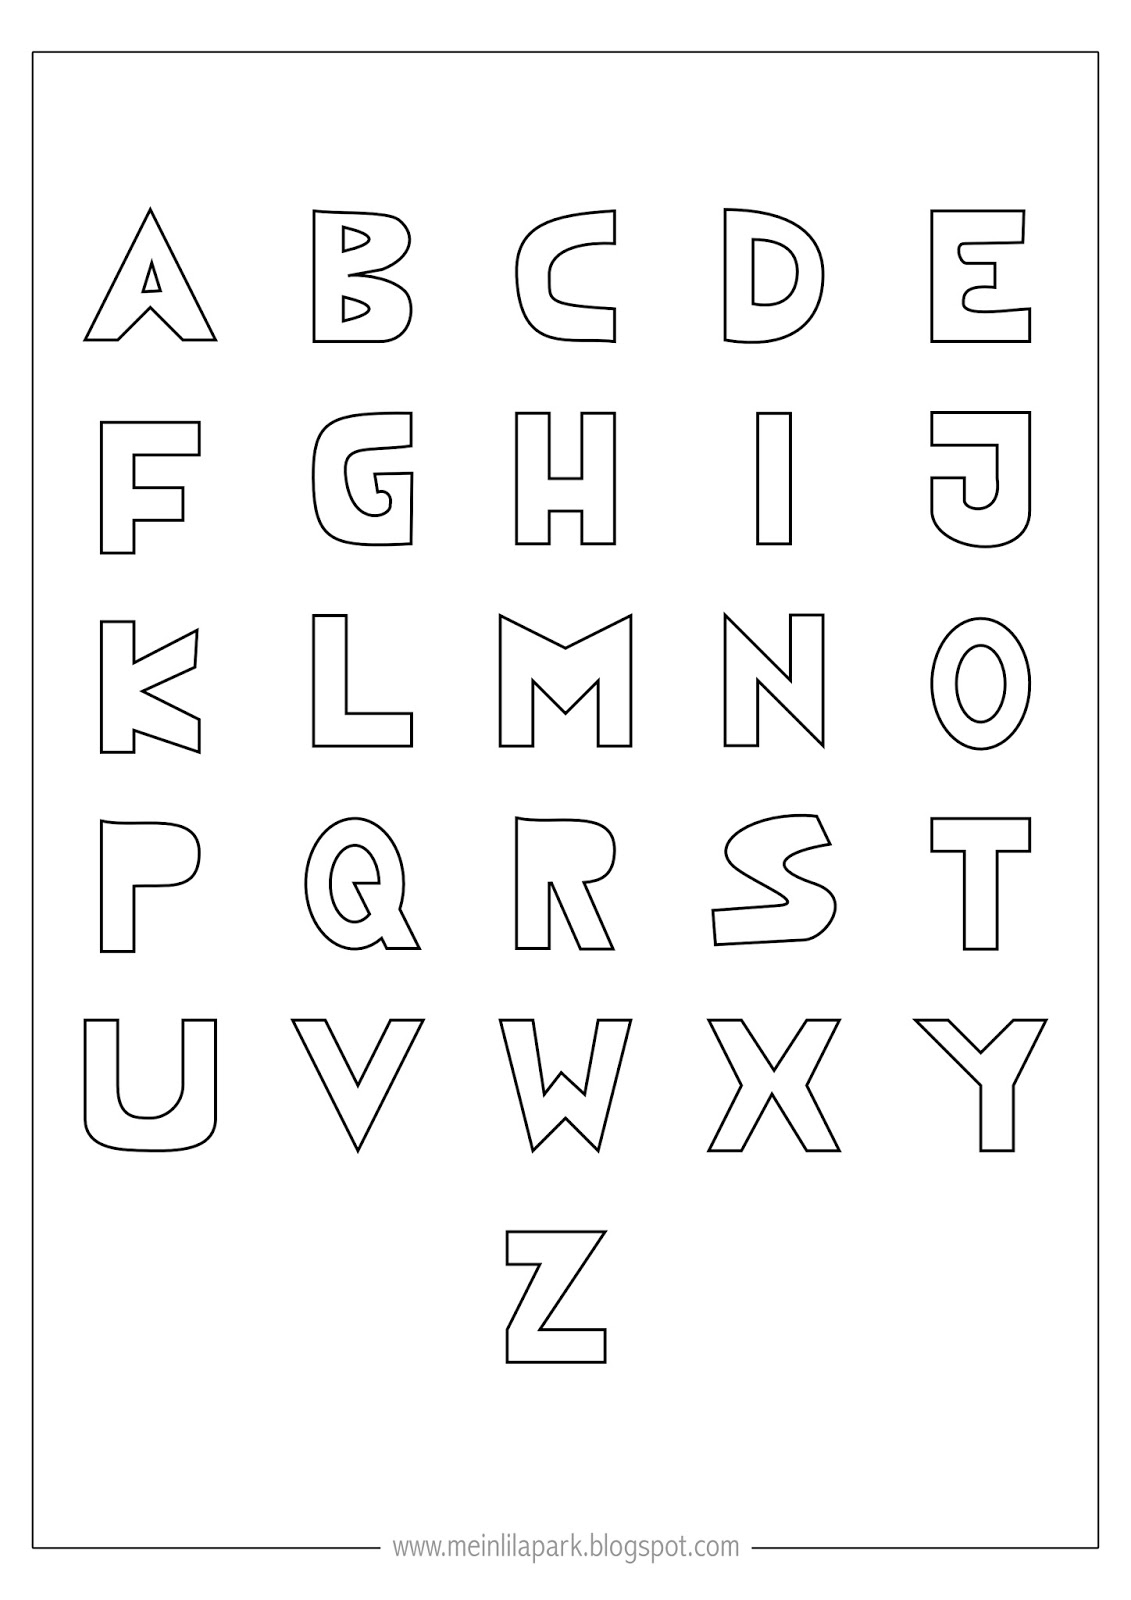 alphabet coloring book printable free printable coloring alphabet letters ausdruckbares alphabet coloring printable book